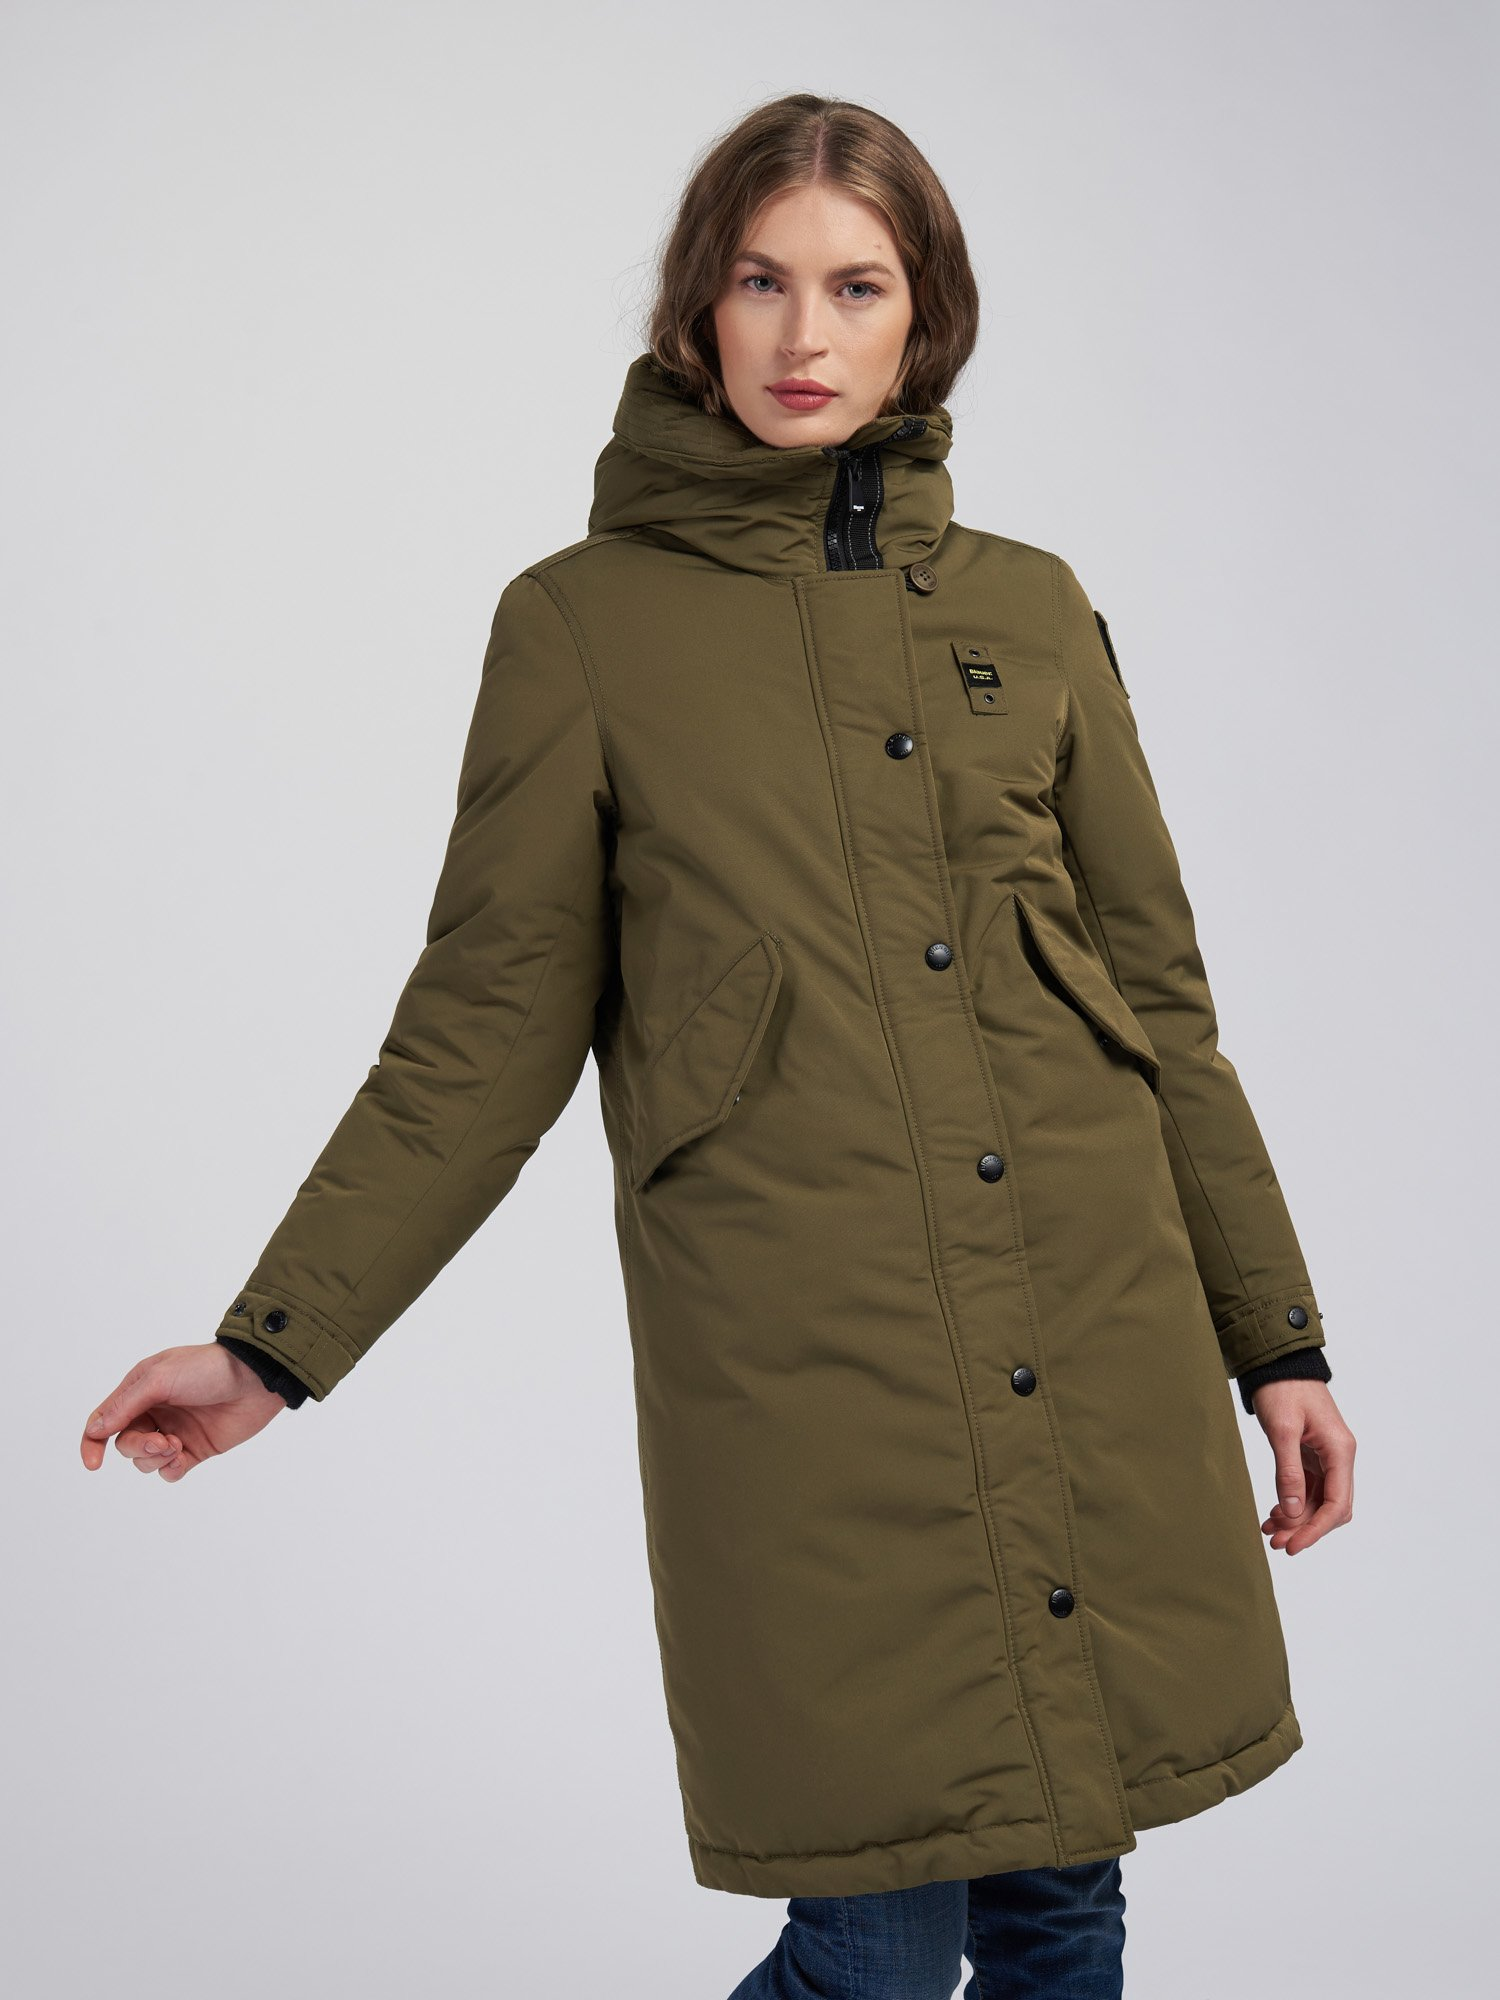 JUDITH LONG PARKA IN LIGHT TASLAN - Blauer